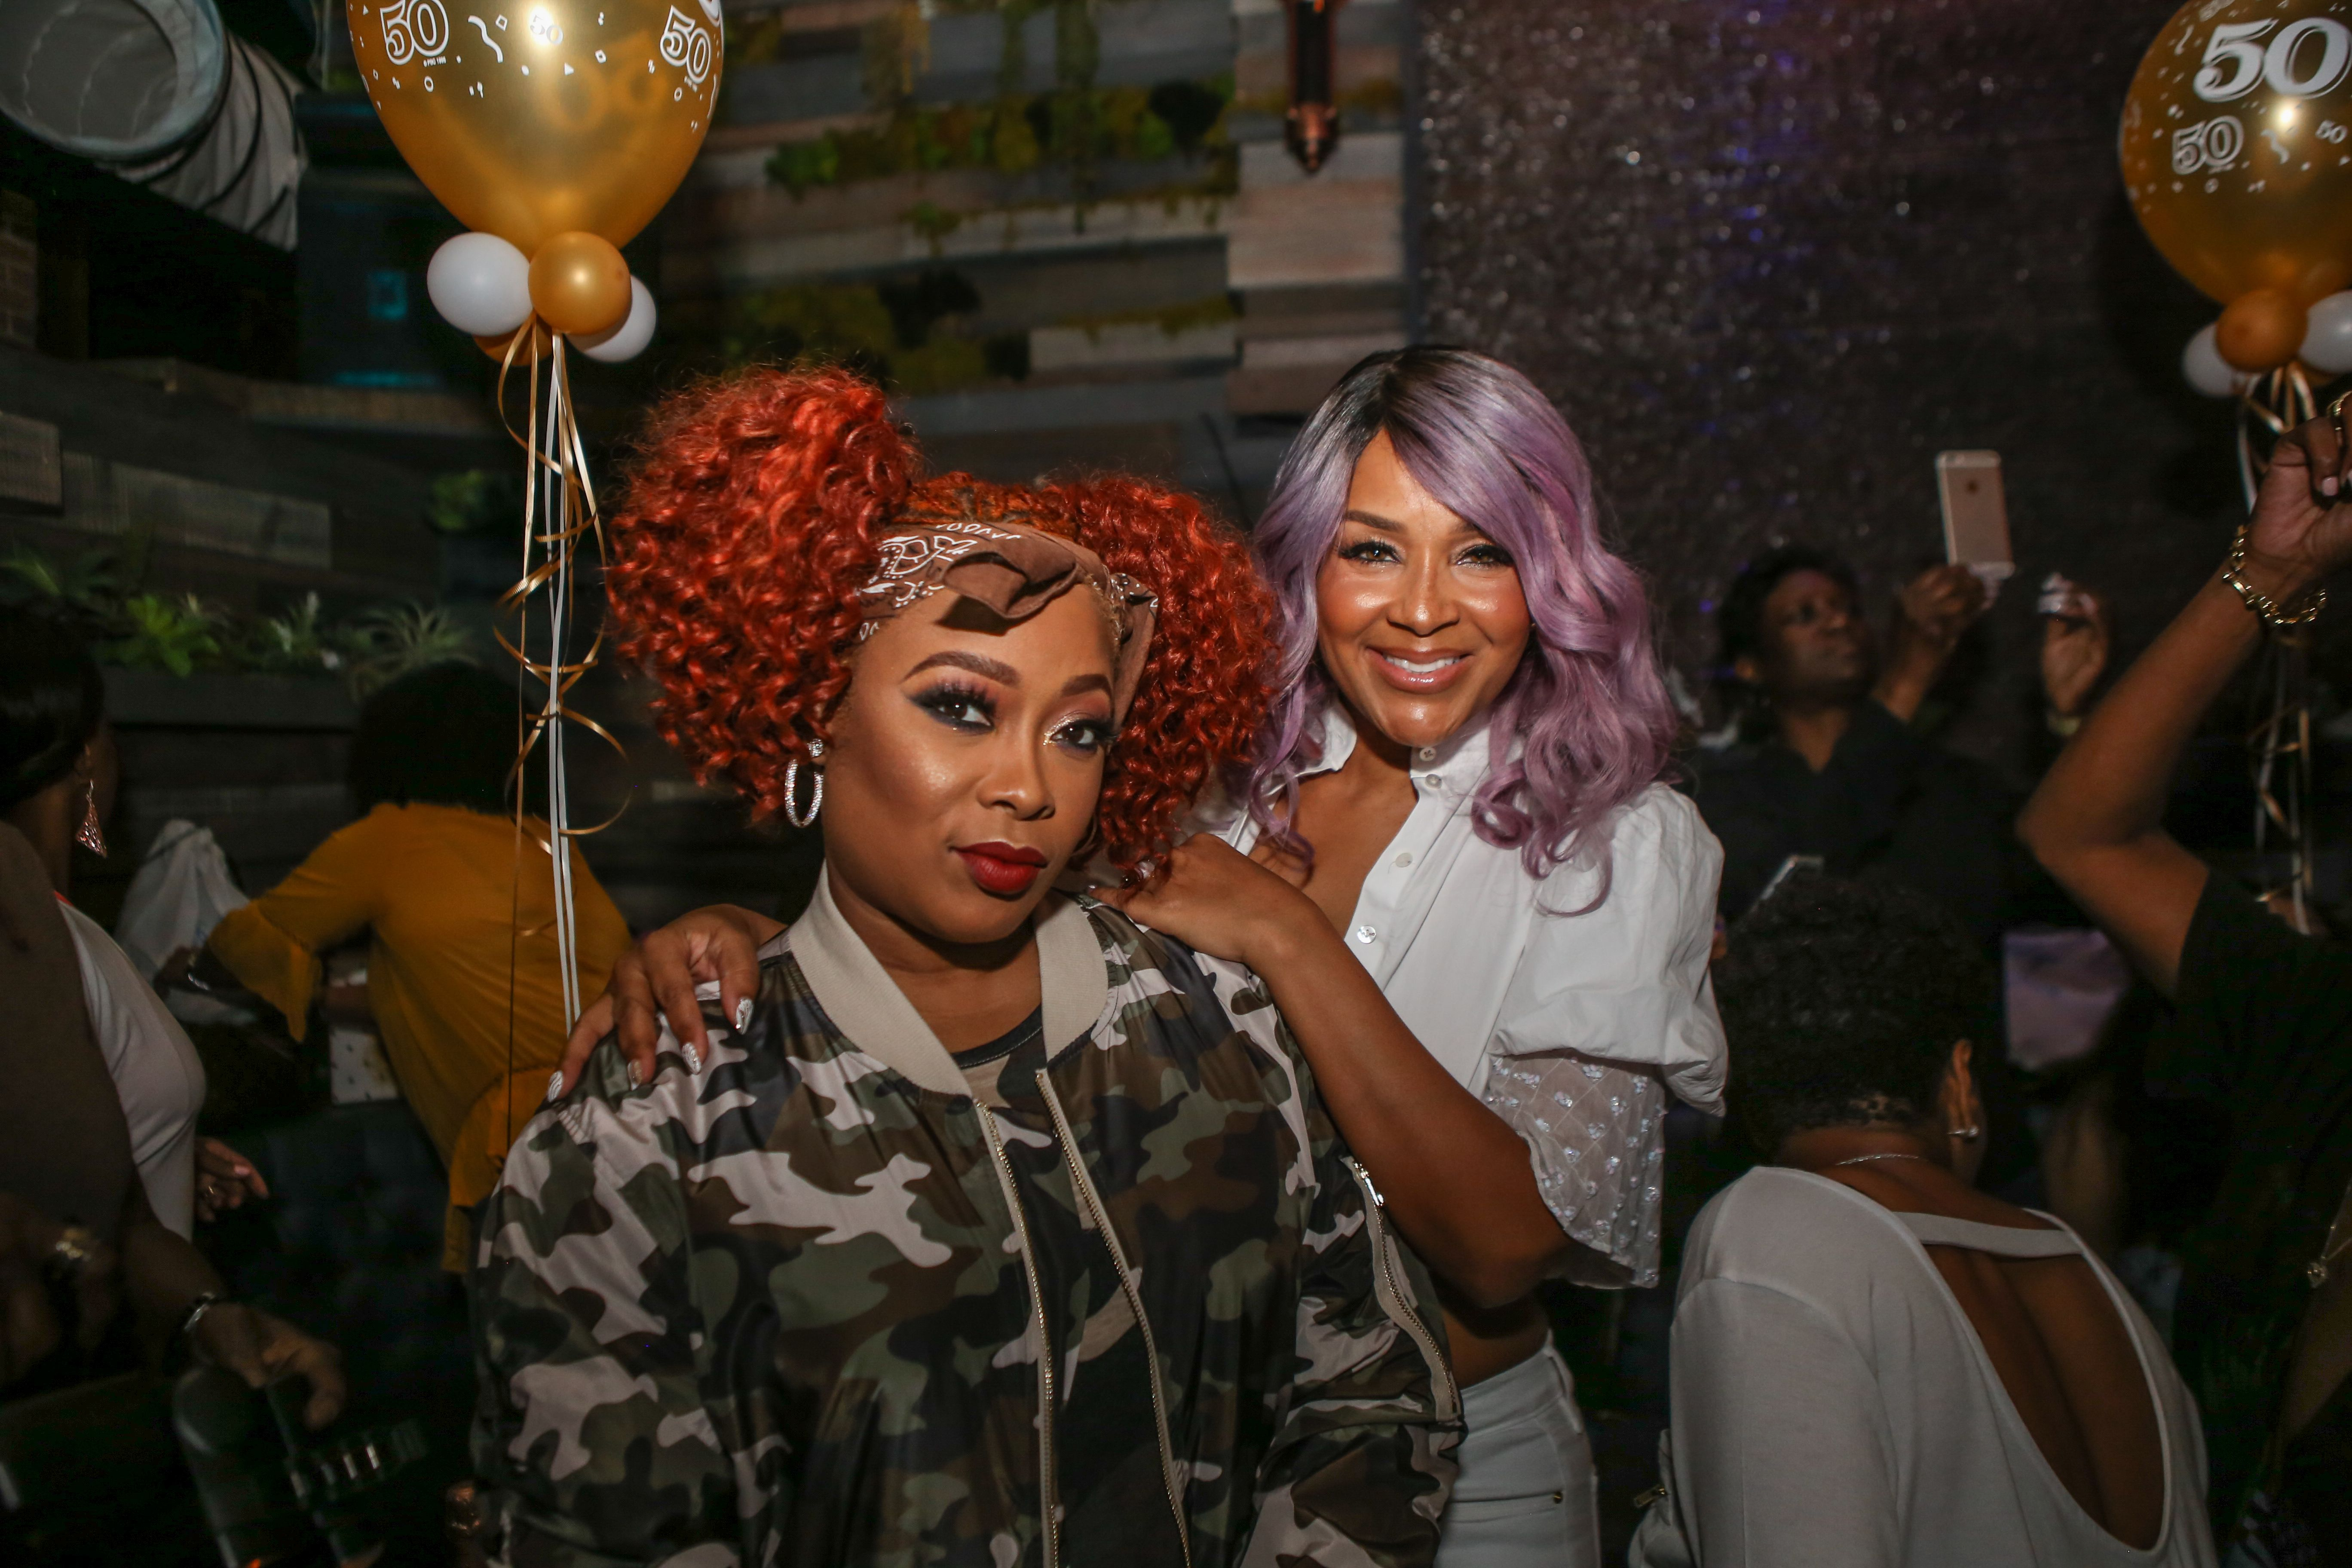 Da Brat and Lisa Raye McCoy at a lounge on September 23, 2017 in Los Angeles. | Photo: Getty Images